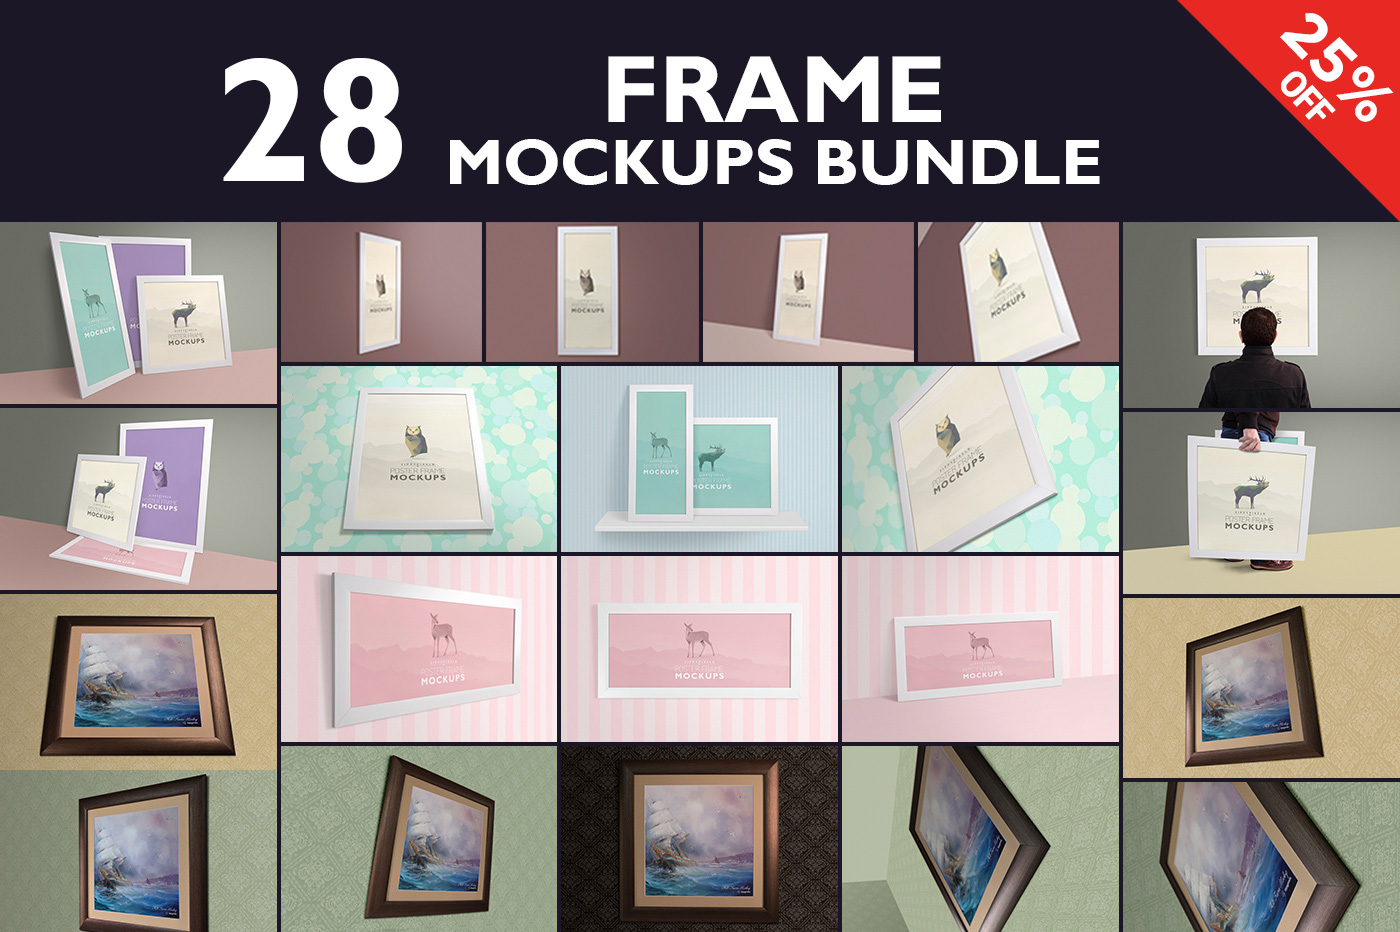 Photo-Poster-Frame-Mockup-Bundle